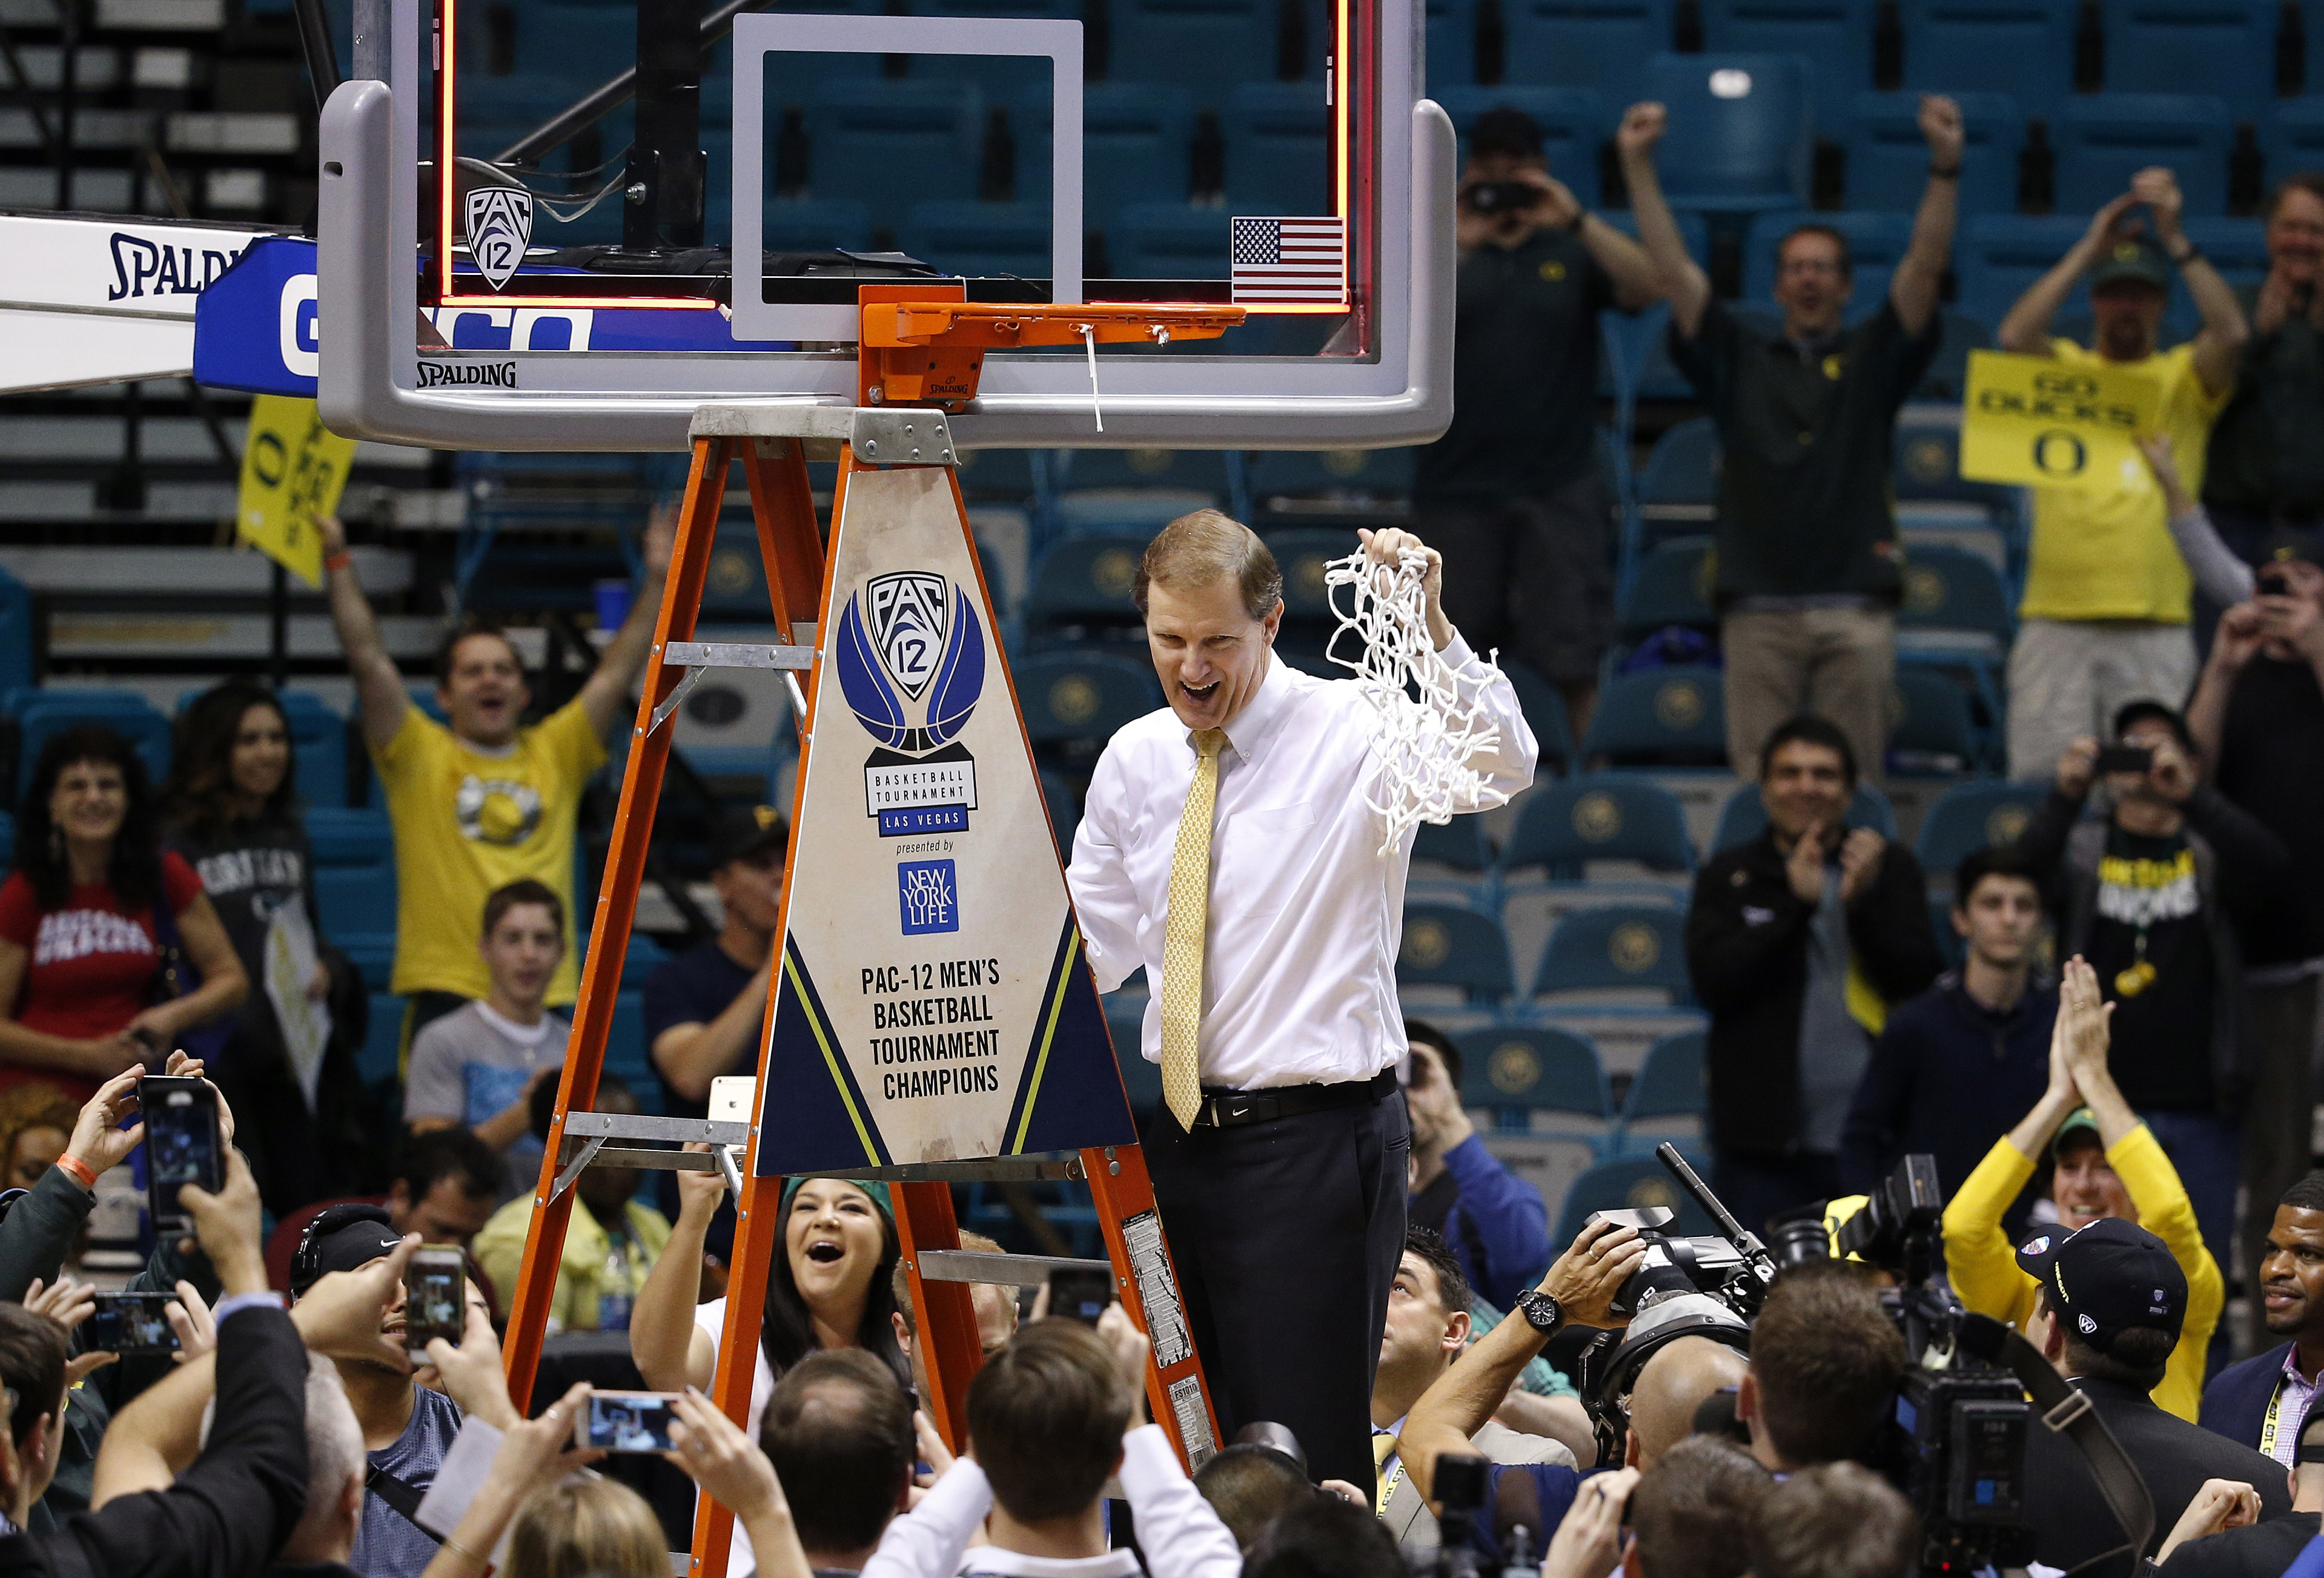 FILE - In tis Saturday, March 12, 2016, file photo, Oregon head coach Dana Altman celebrates while cutting down the net after his team defeated Utah 88-57 in an NCAA college basketball game in the championship of the Pac-12 men's tournament in Las Vegas.